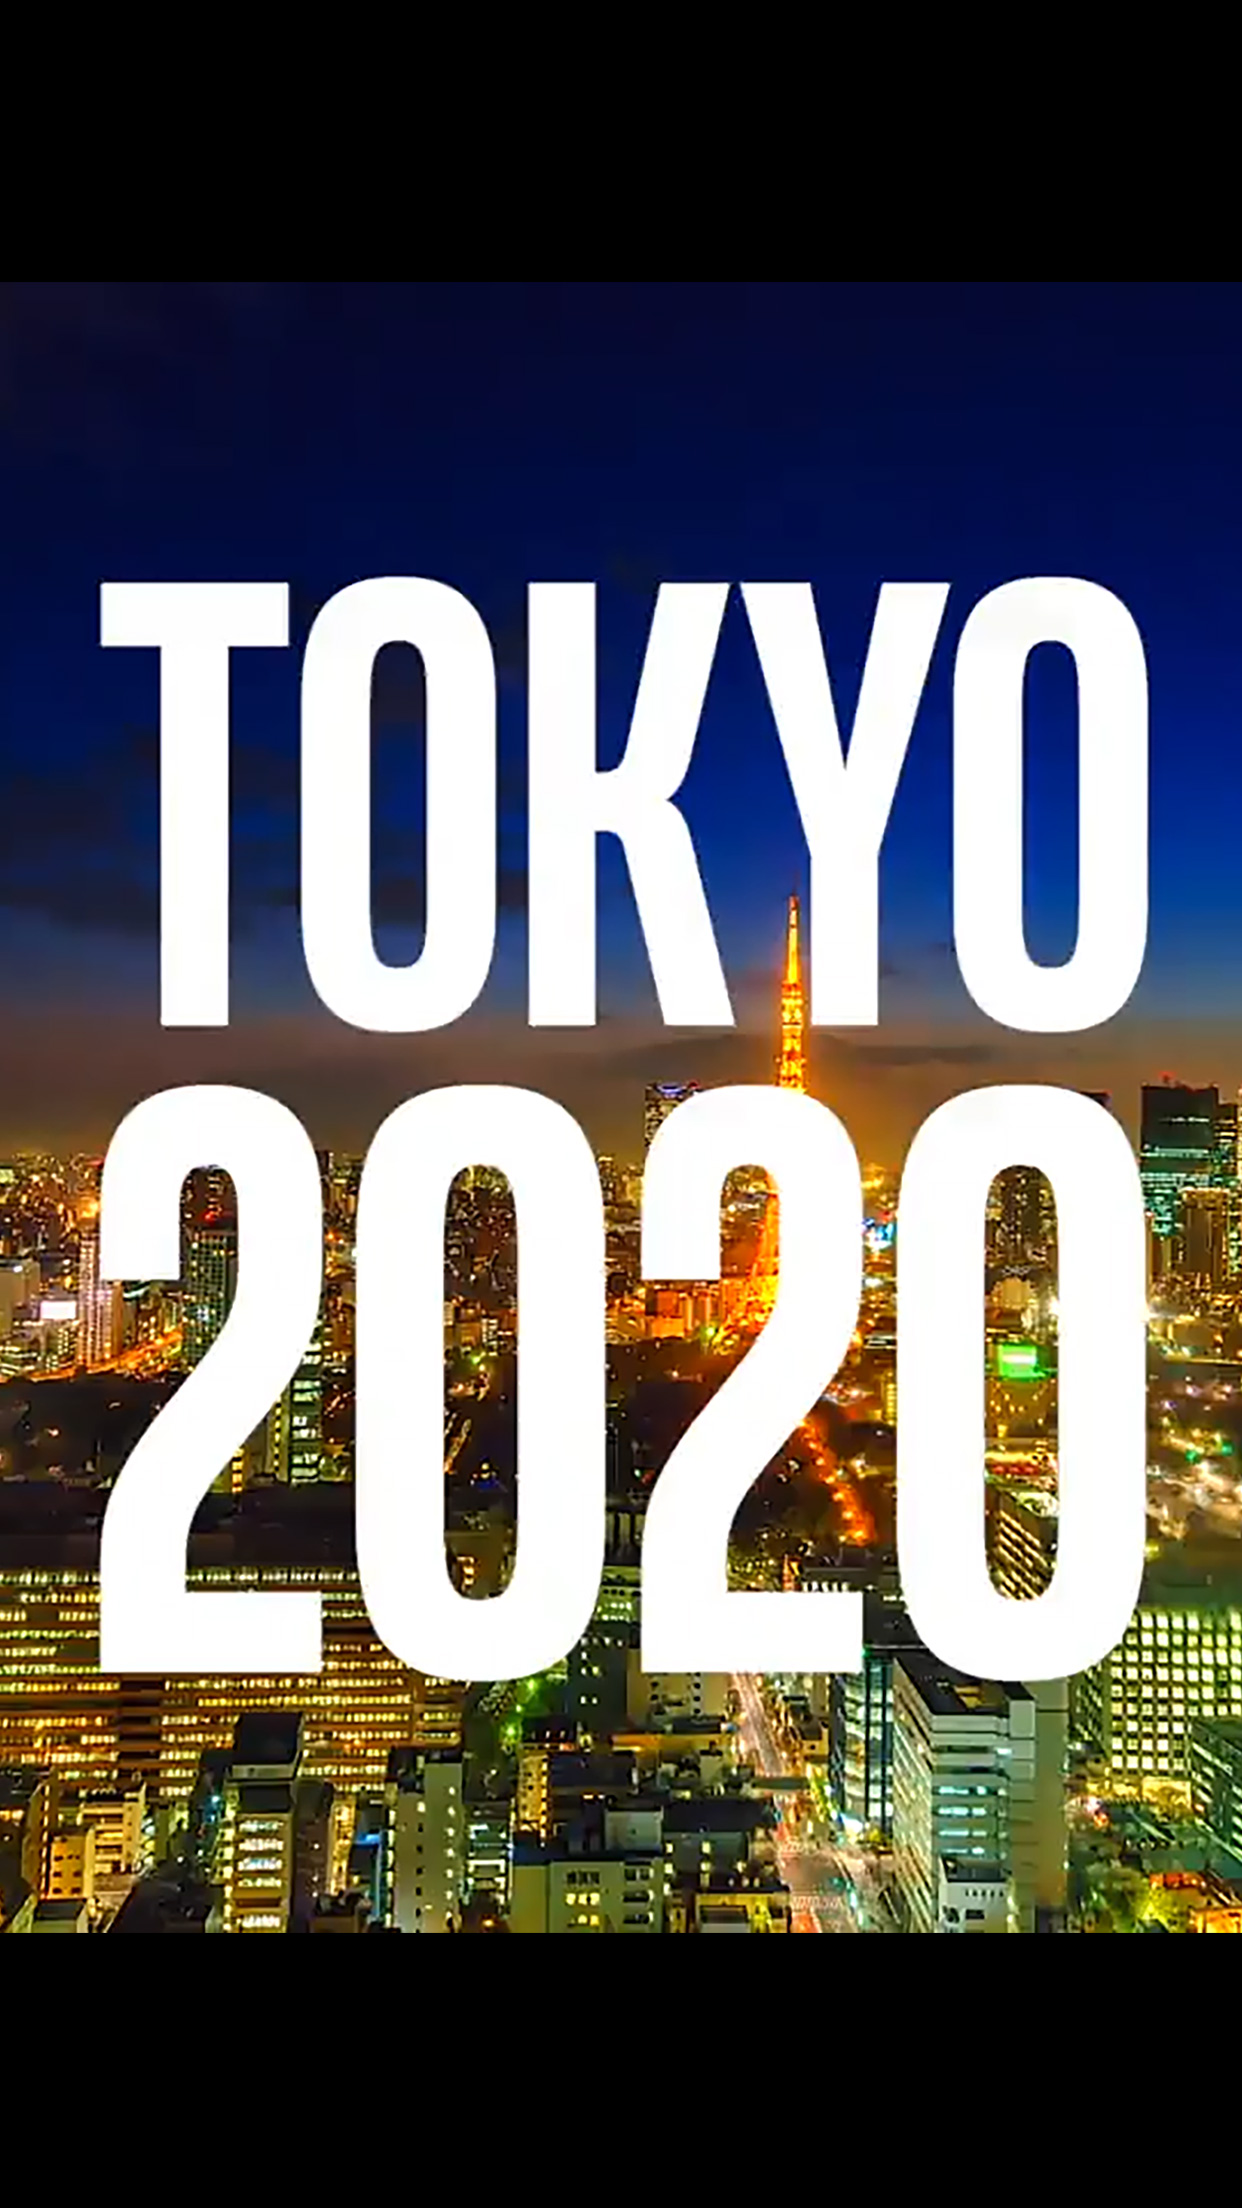 Intel is bringing Esports and gaming to the biggest stage with the Intel World Open at the 2020 Tokyo Olympics.